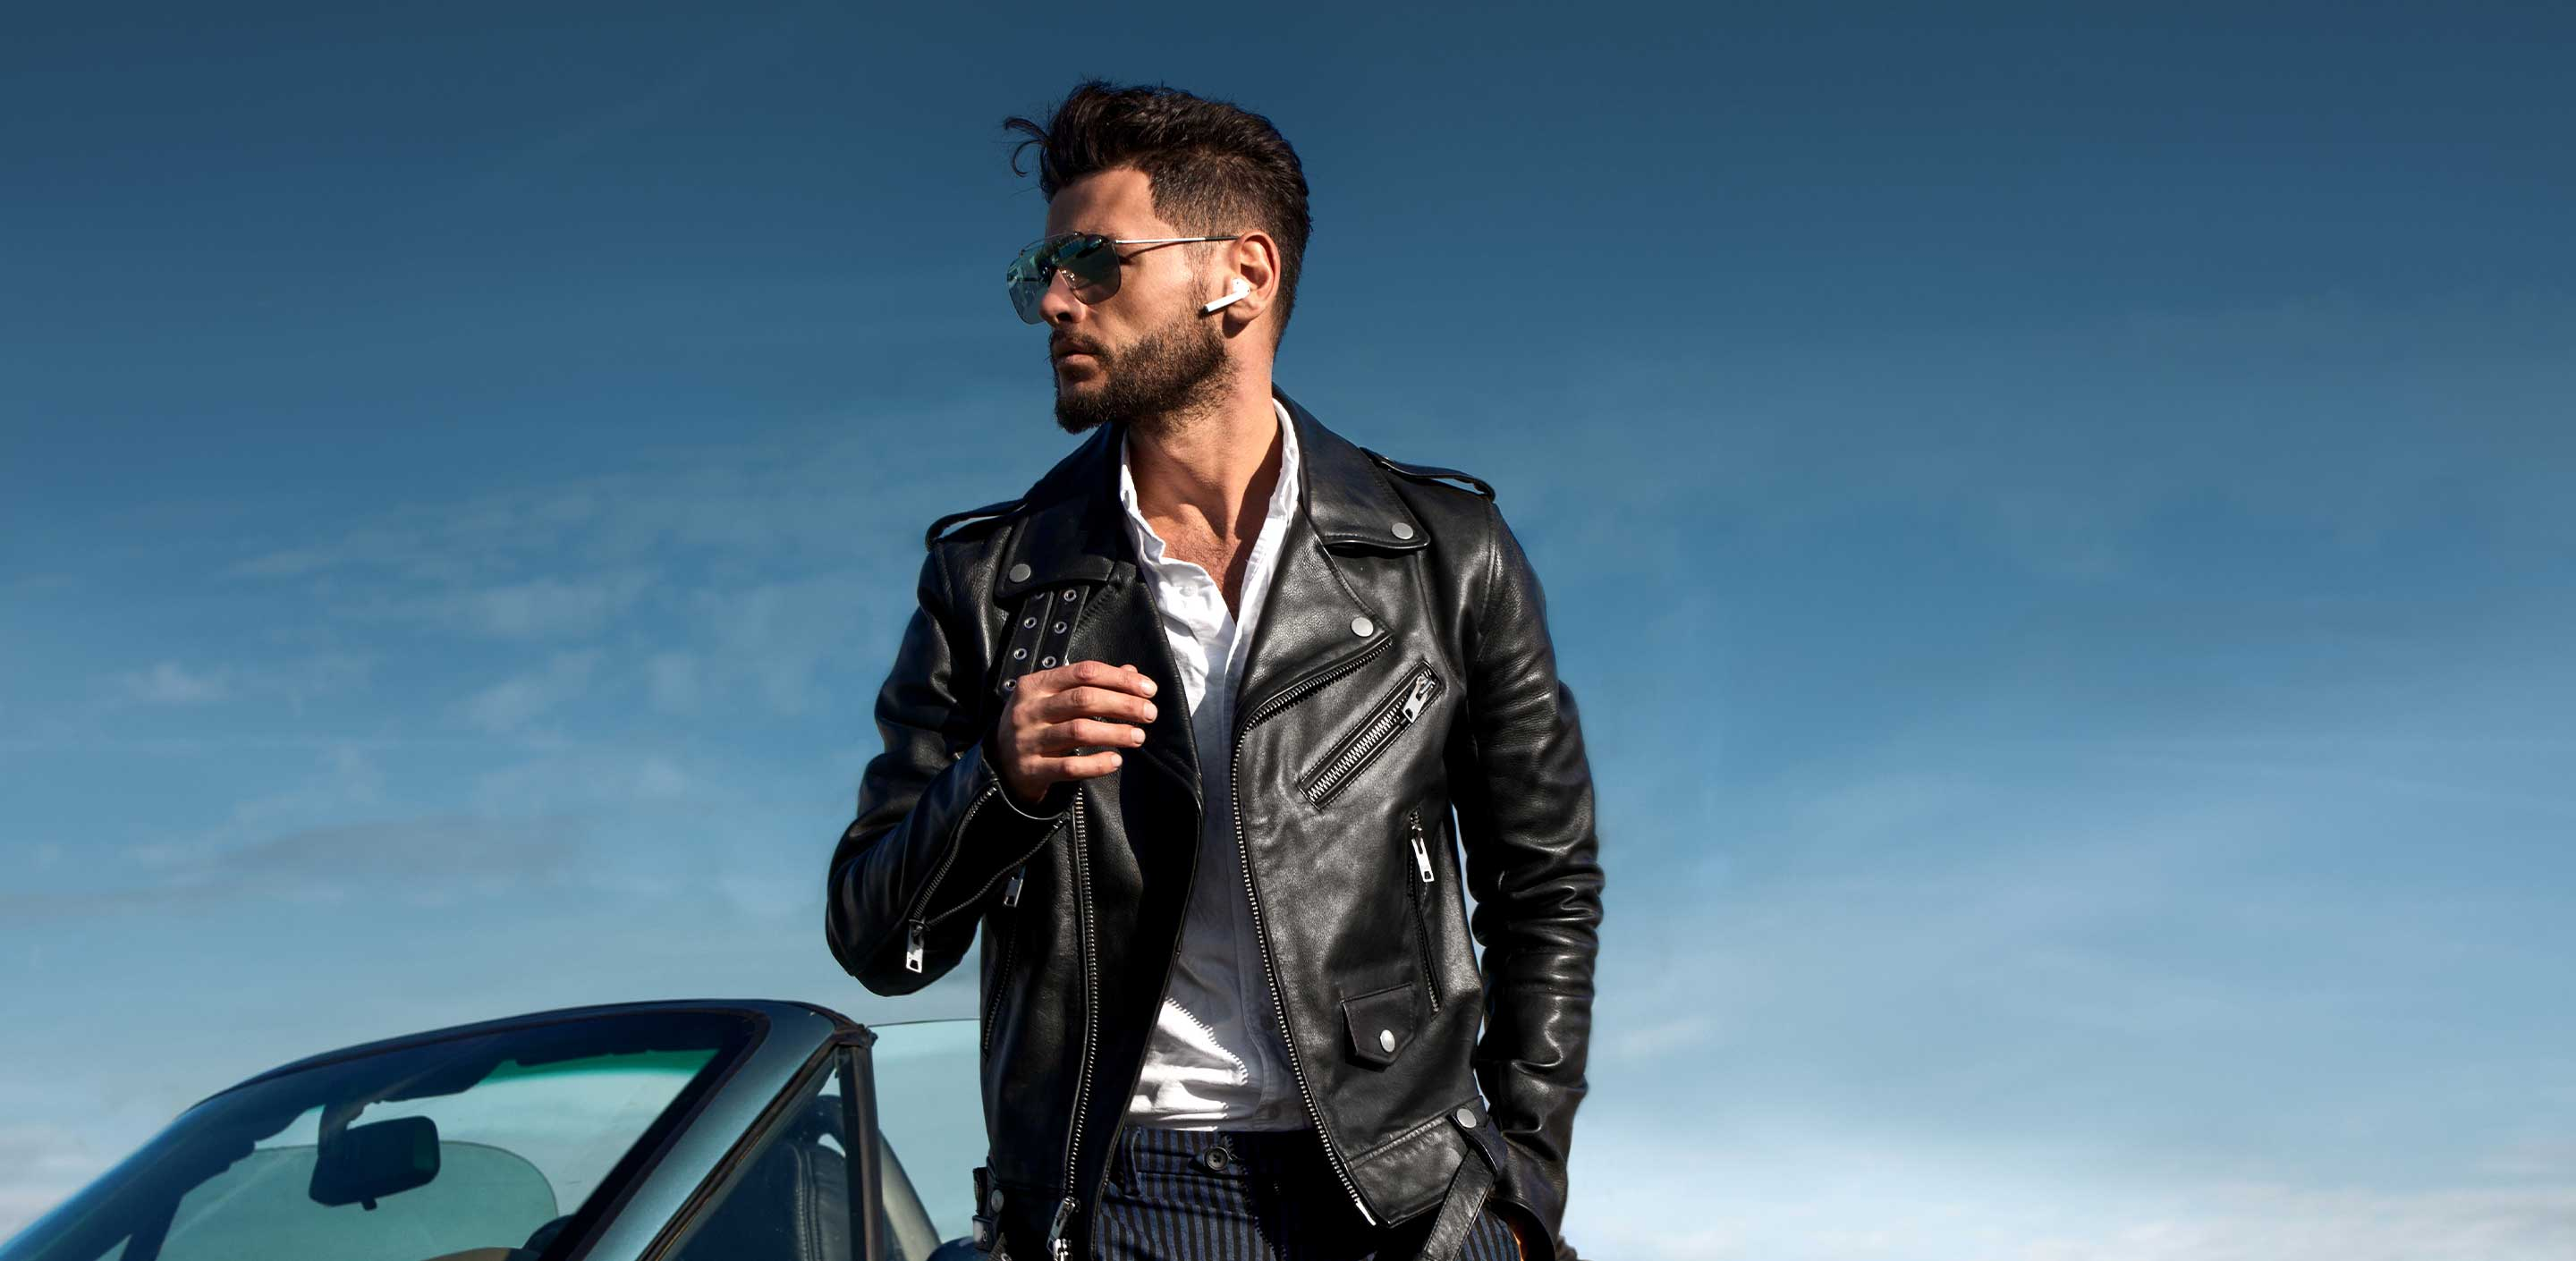 10 Reasons why Leather Jackets are Cool